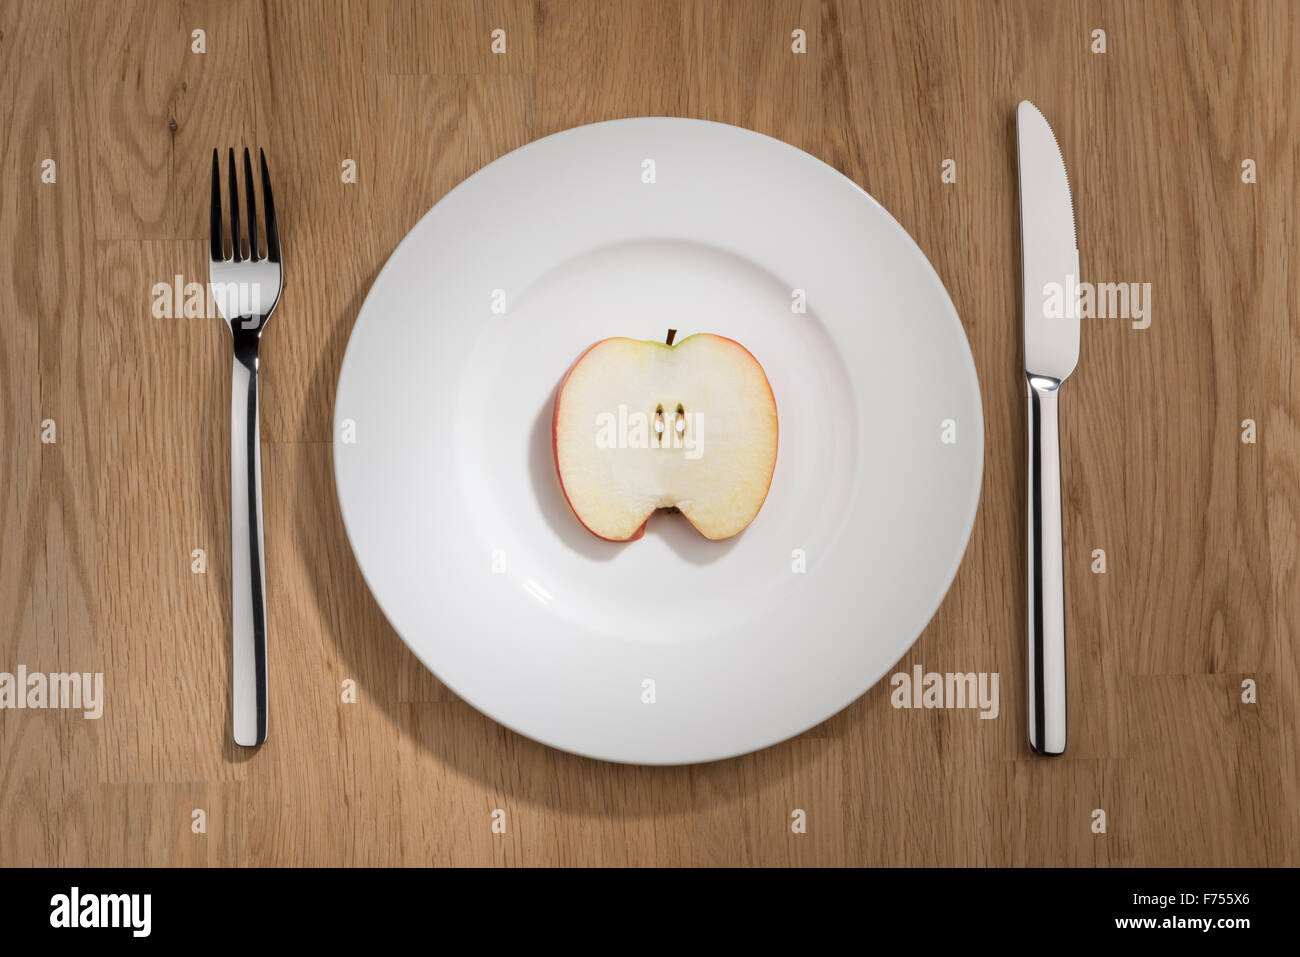 Image of a apple slice on a white plate with fork and knife - Stock Image